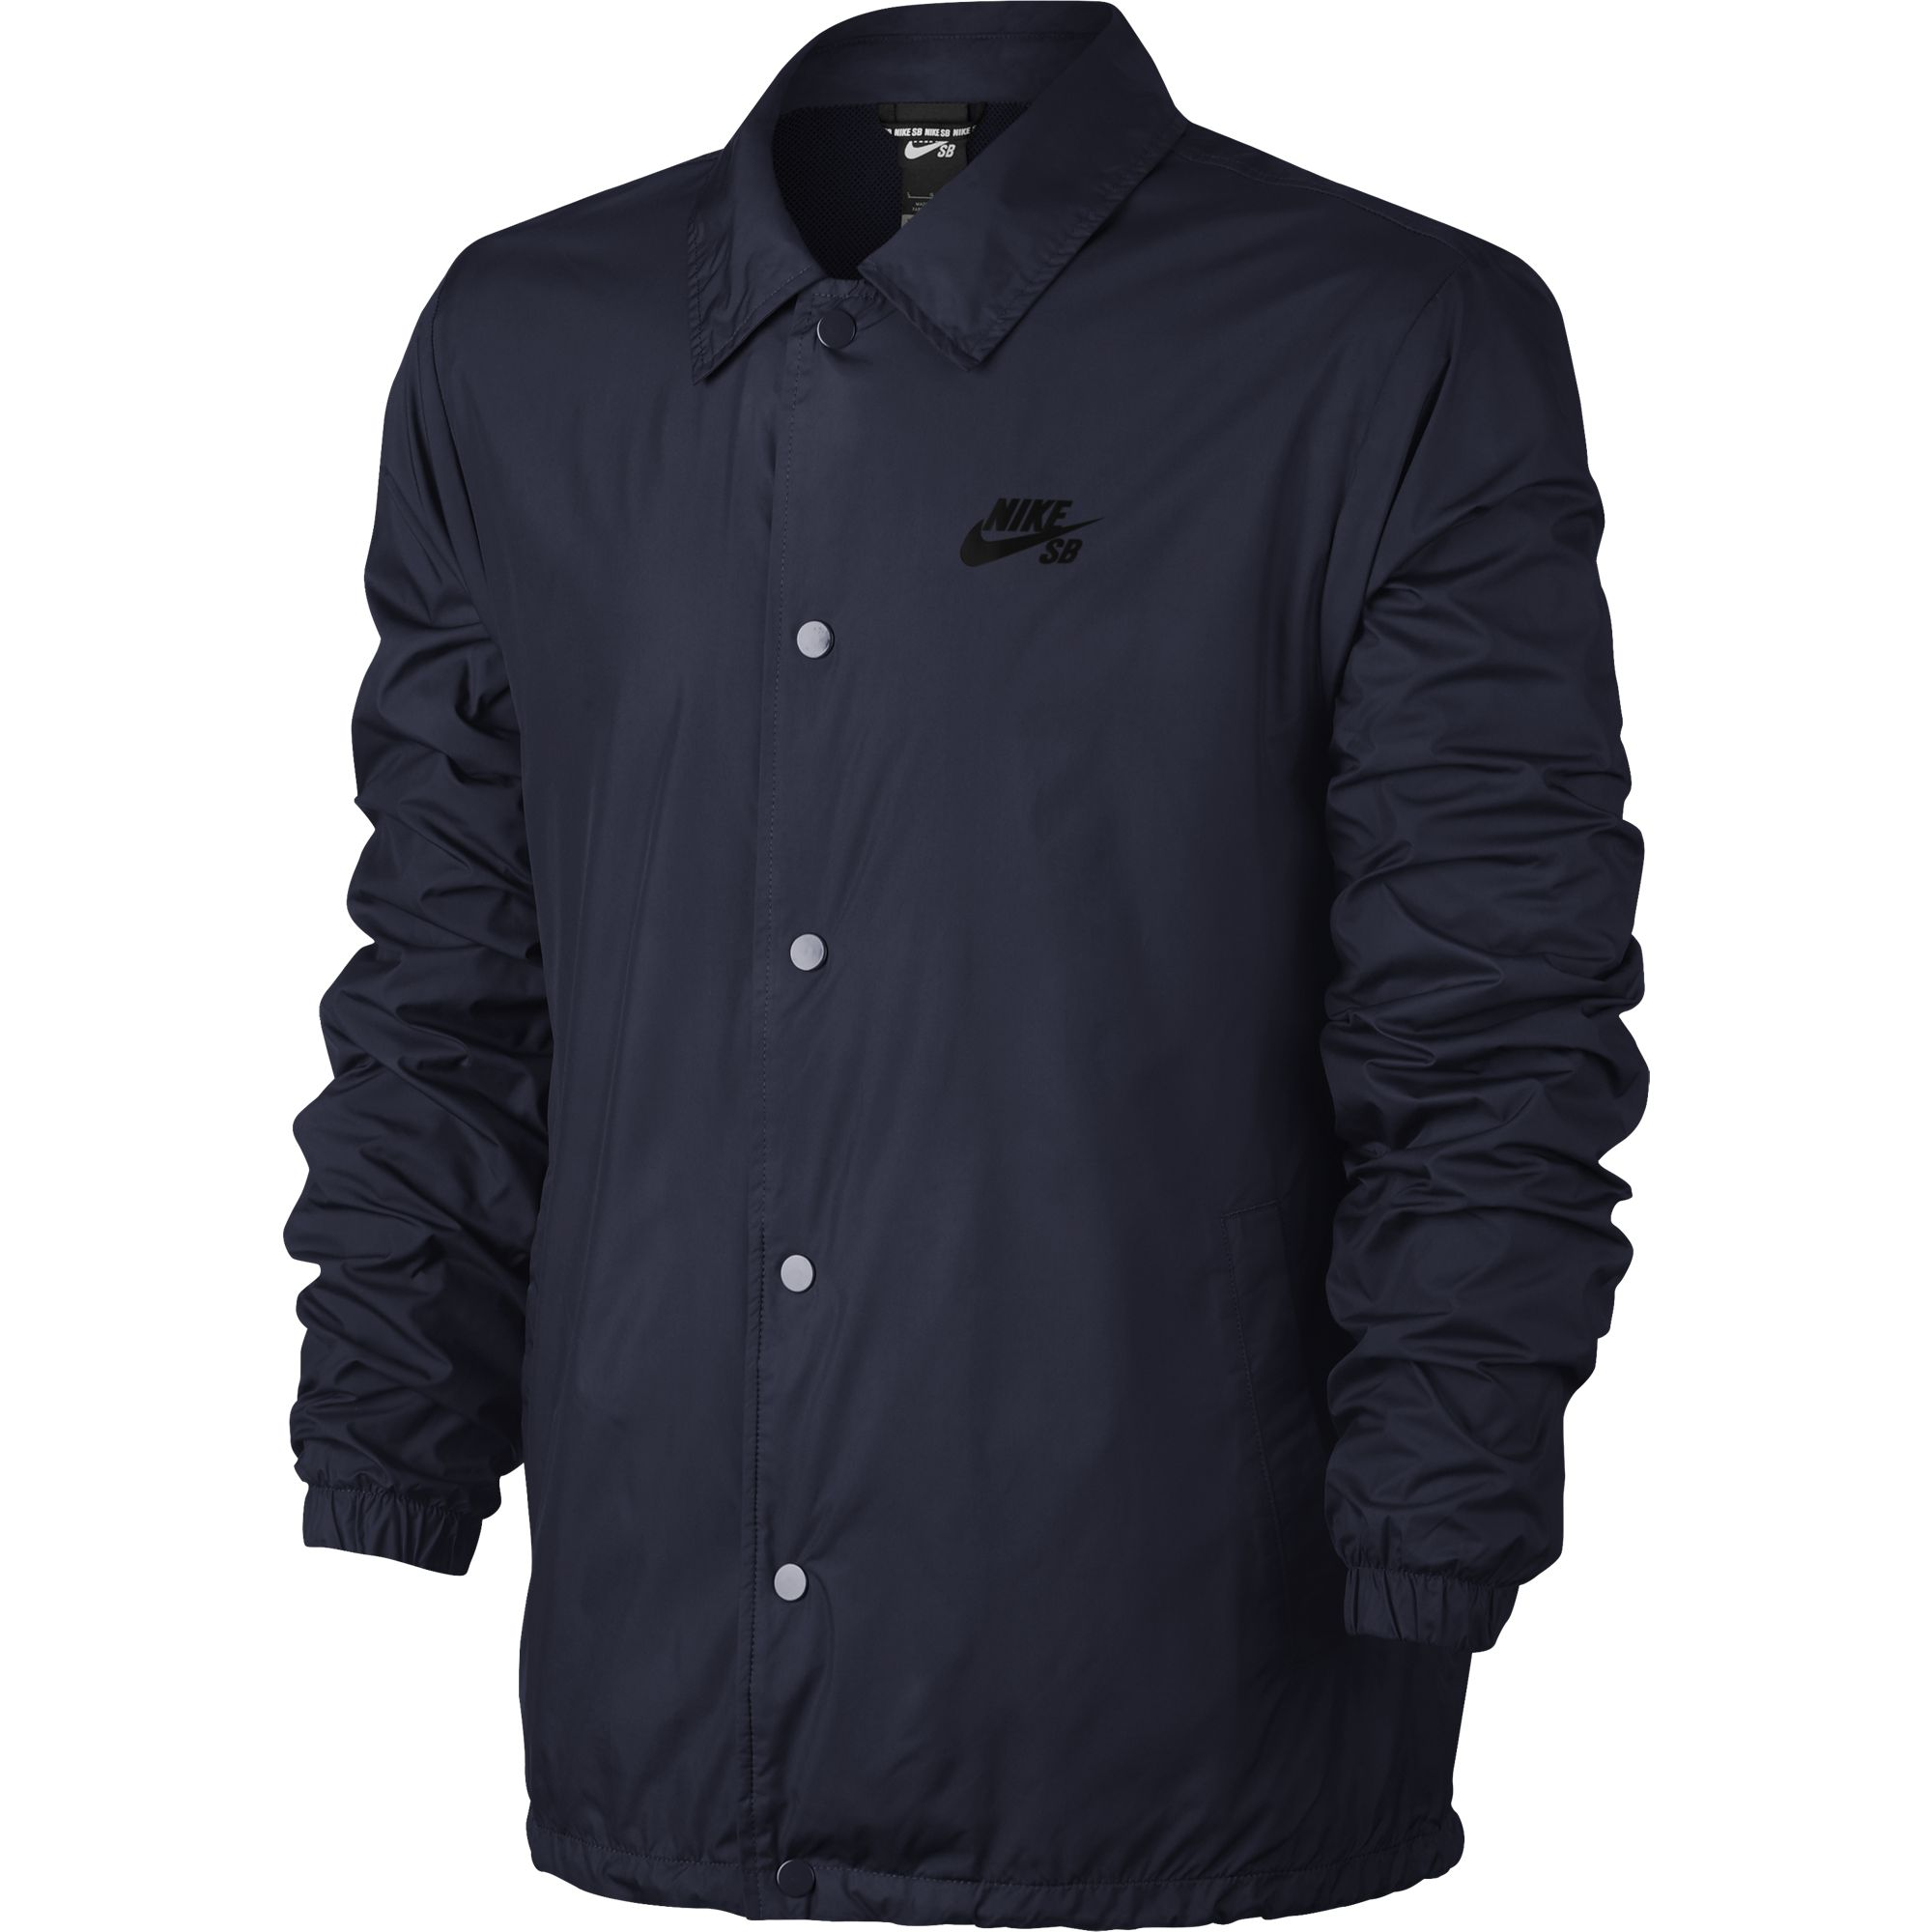 Shield Coach Jacket Black/Obsidian